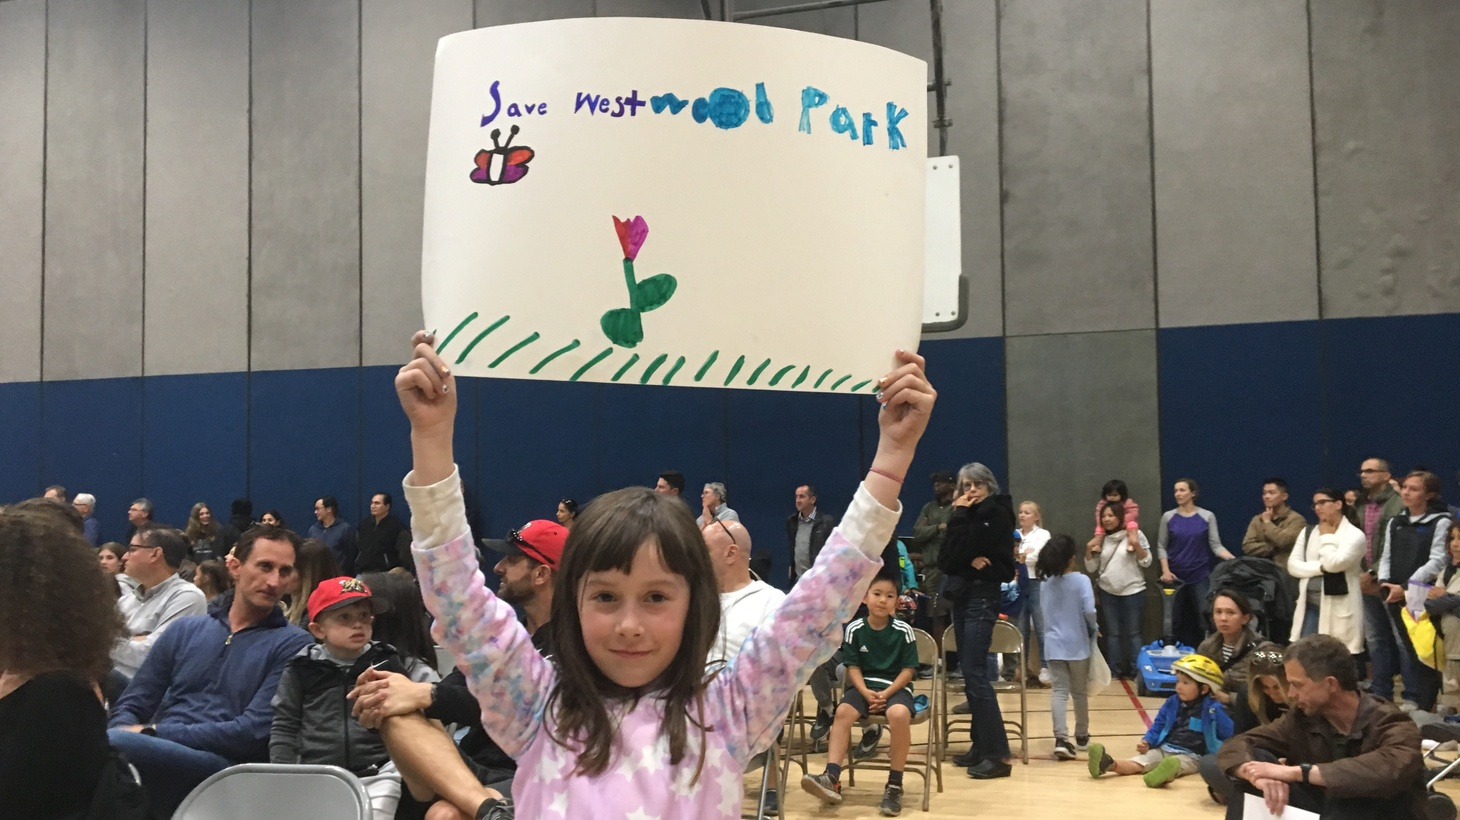 A young girl holds up a sign protesting the proposed synthetic grass field at a meeting at Westwood Recreation Center on May 23.